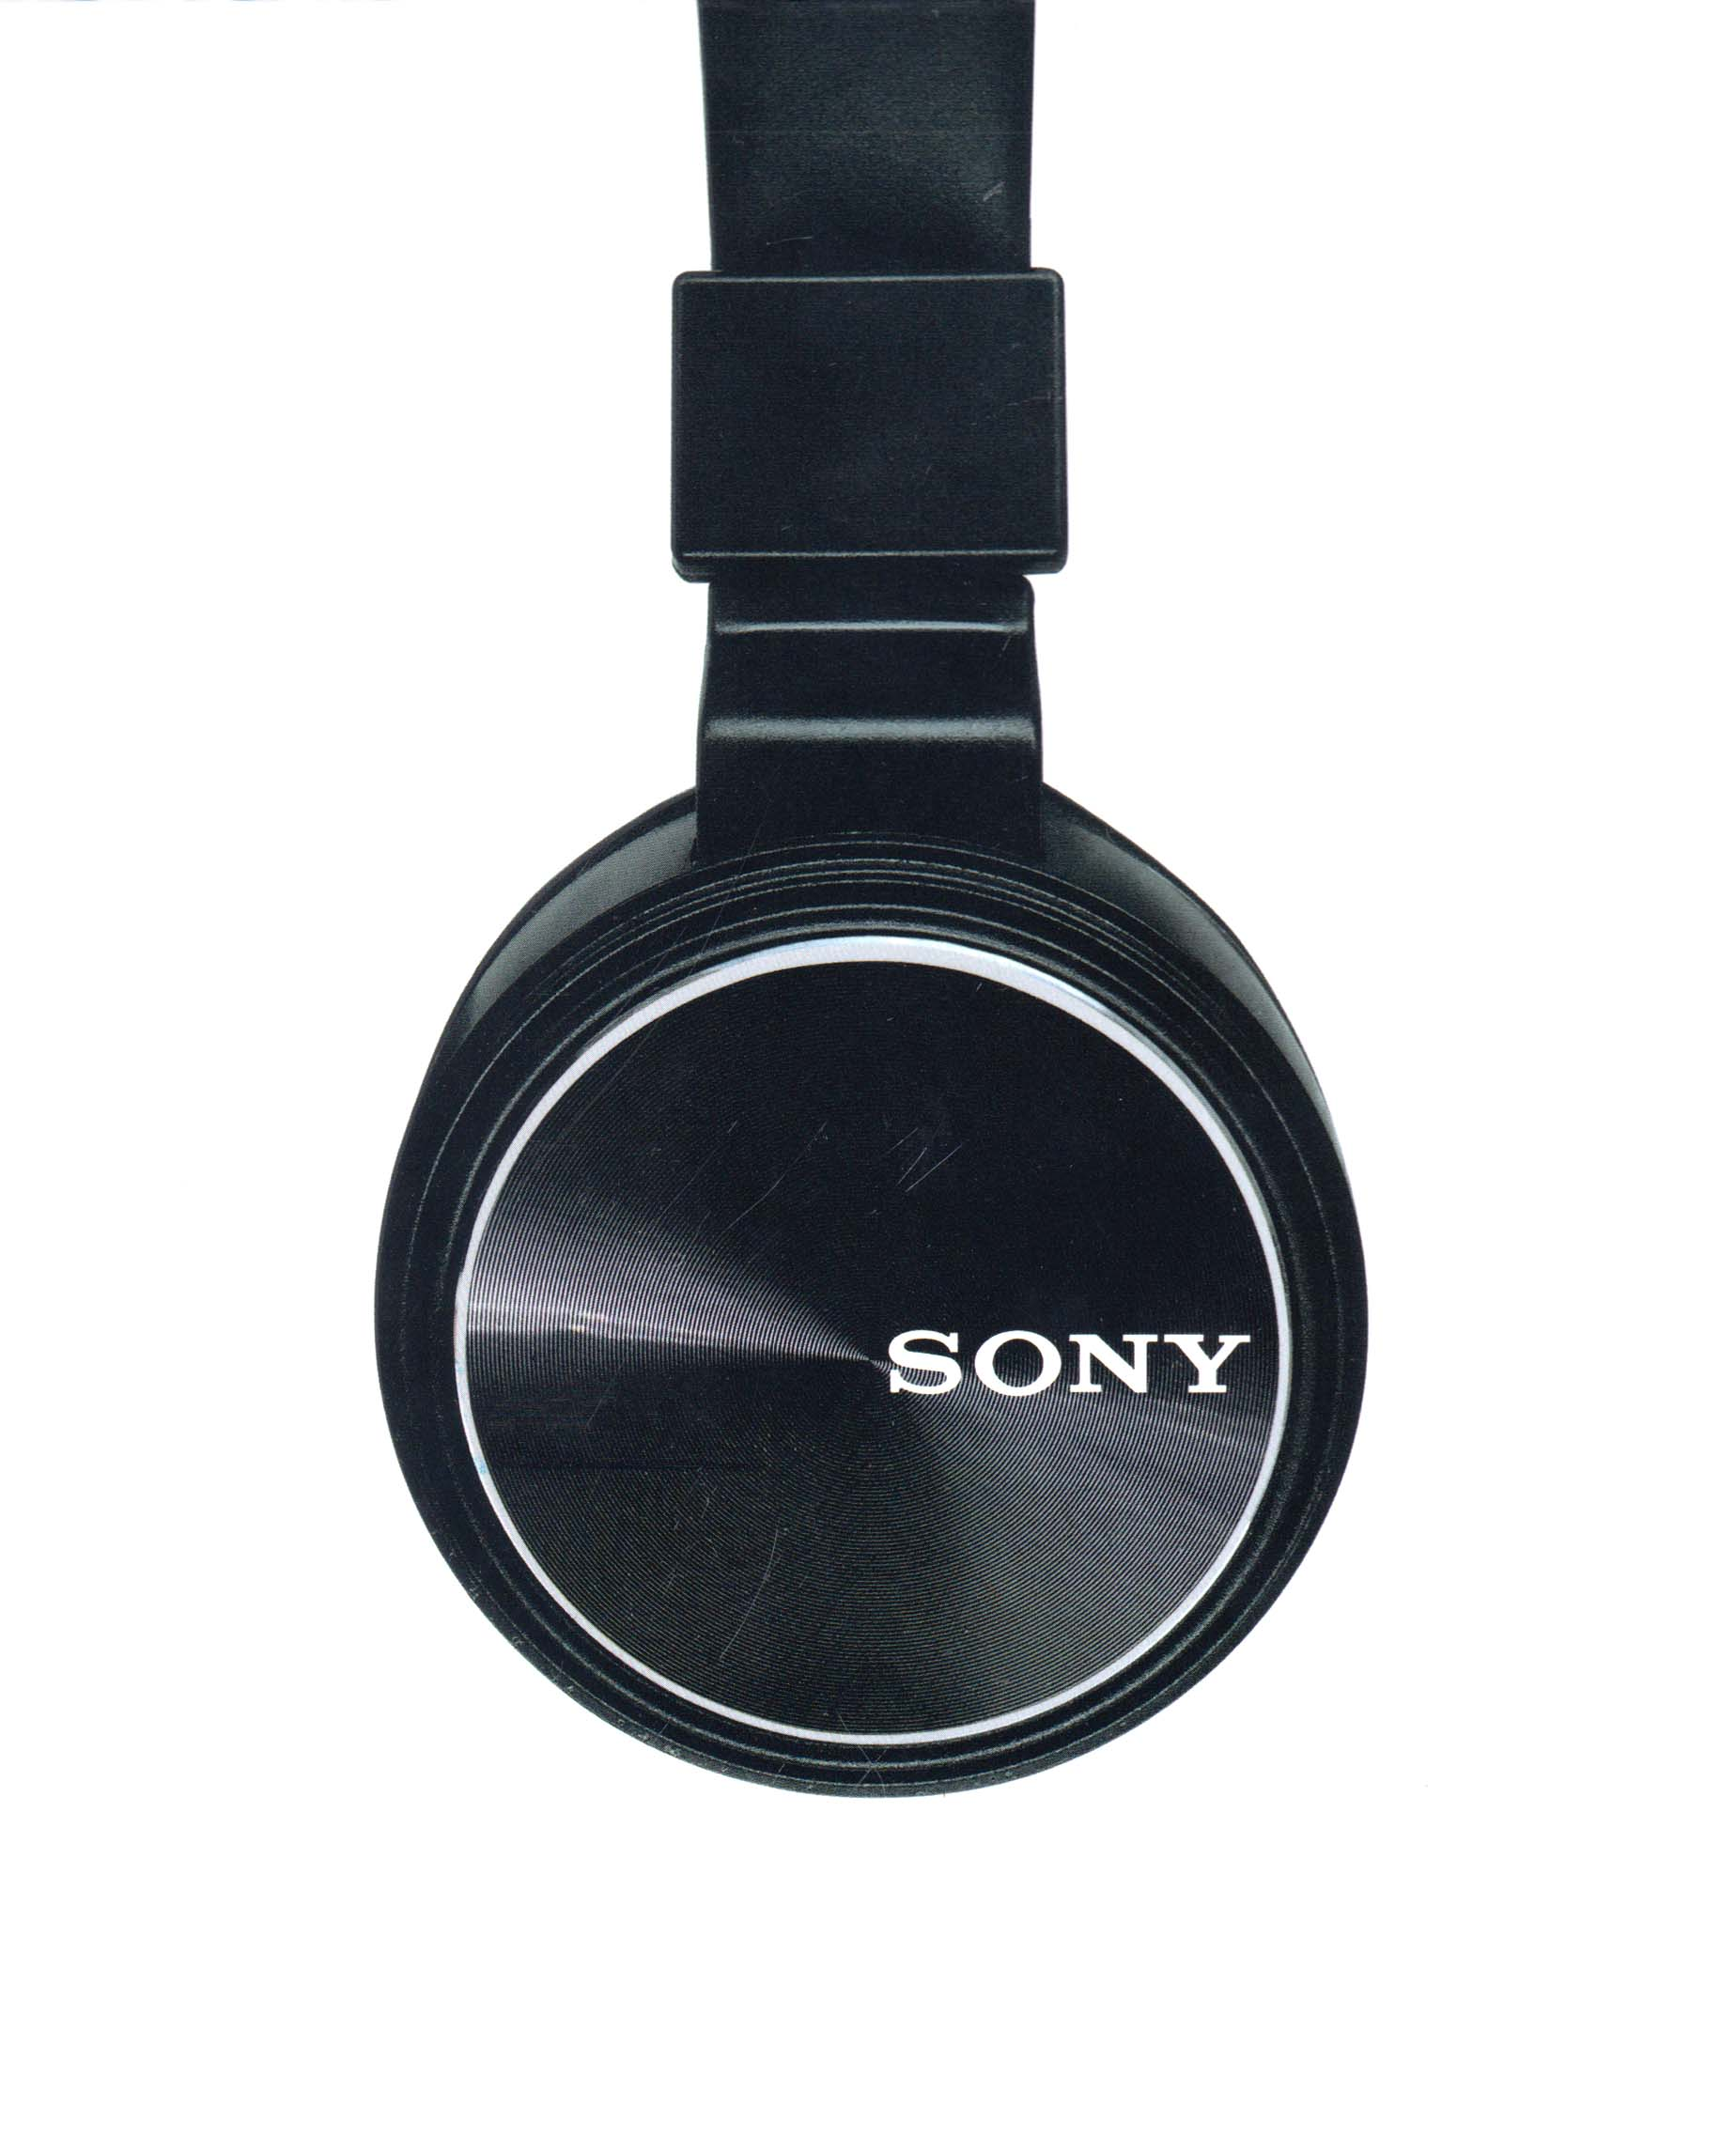 Sony Mdr Xb650bt Bluetooth Headphones Price In Bangladesh